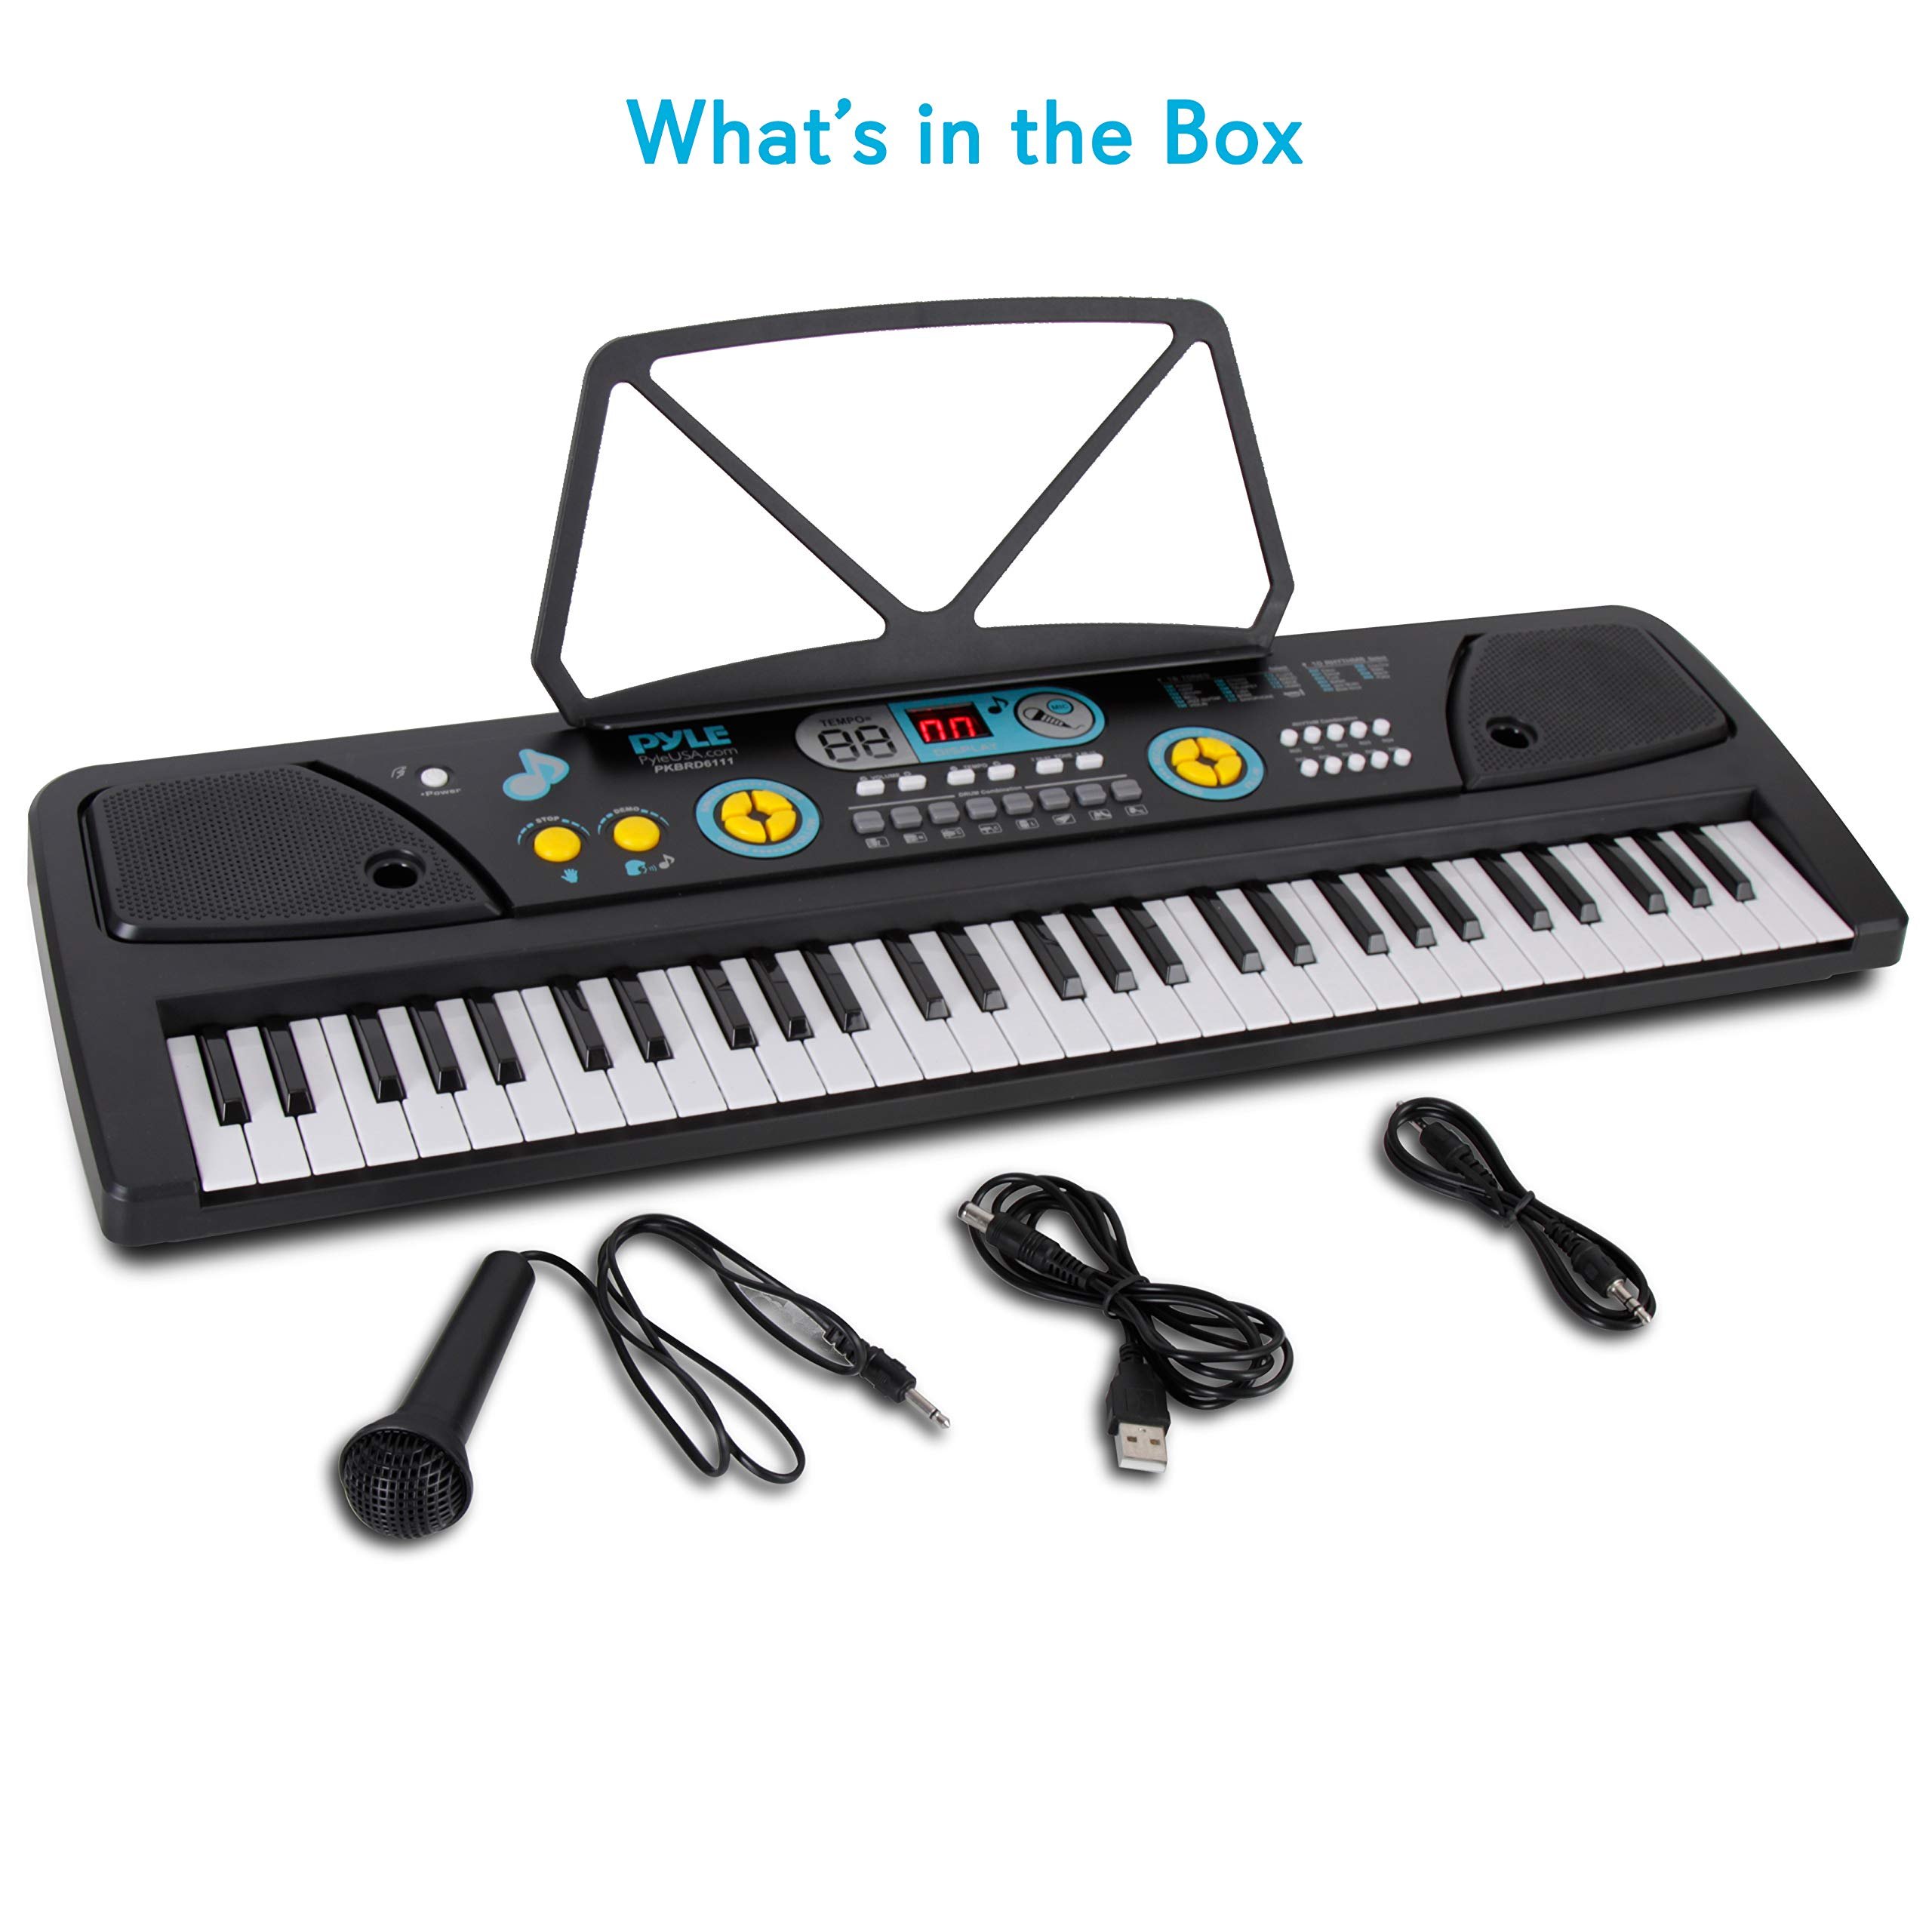 Digital Piano Kids Keyboard - Portable 61 Key Piano Keyboard, Learning Keyboard for Beginners w/ Drum Pad, Recording, Microphone, Music Sheet Stand, Built-in Speaker - Pyle by Directly Cheap (Image #7)